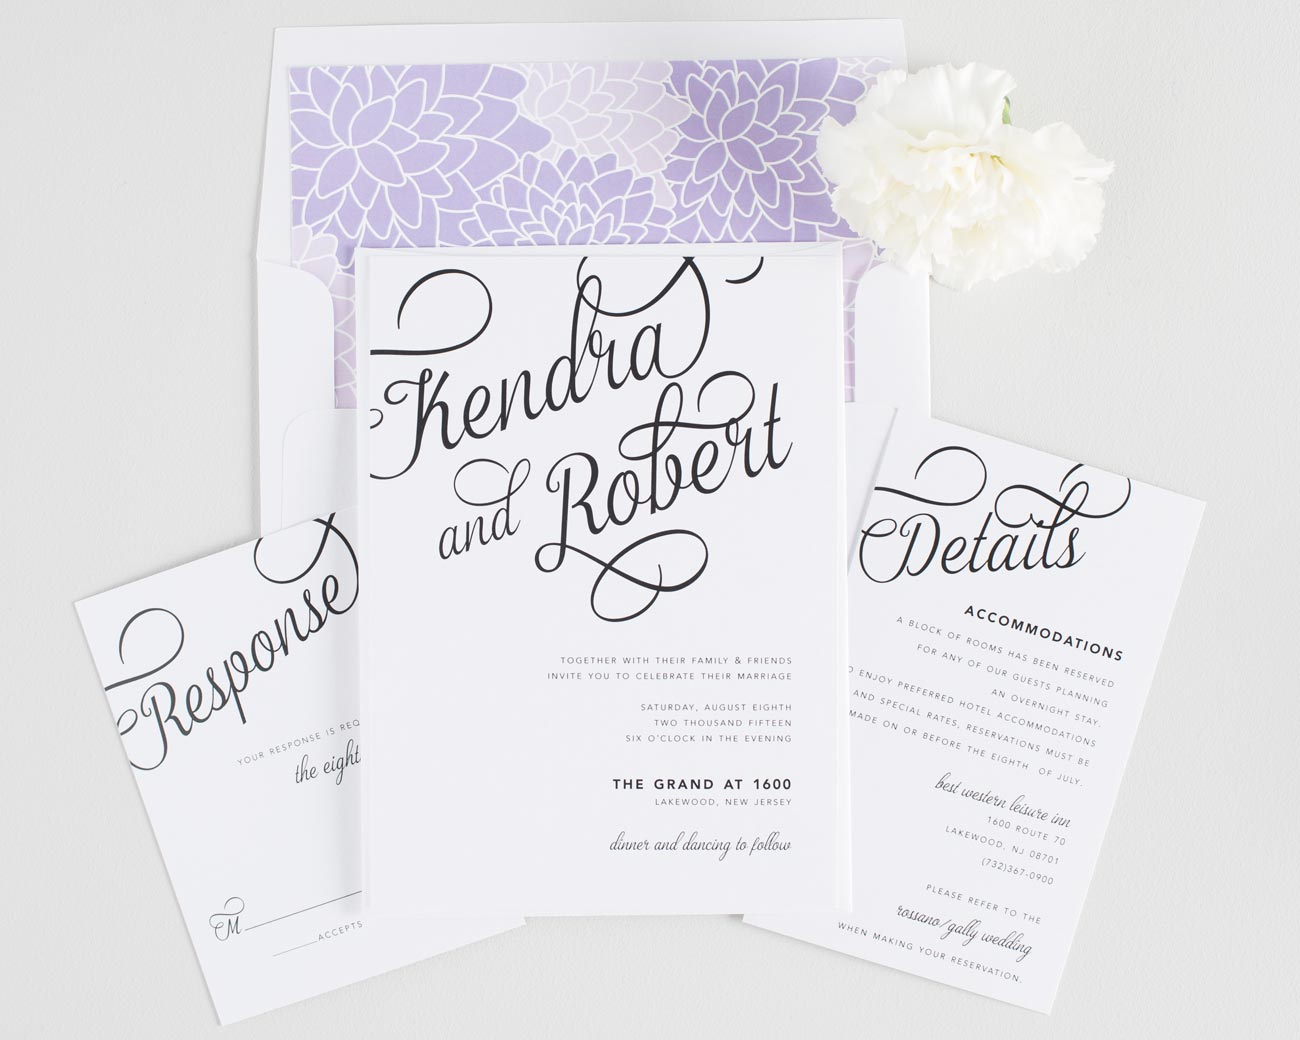 Amethyst Wedding Invitations with large calligraphy names